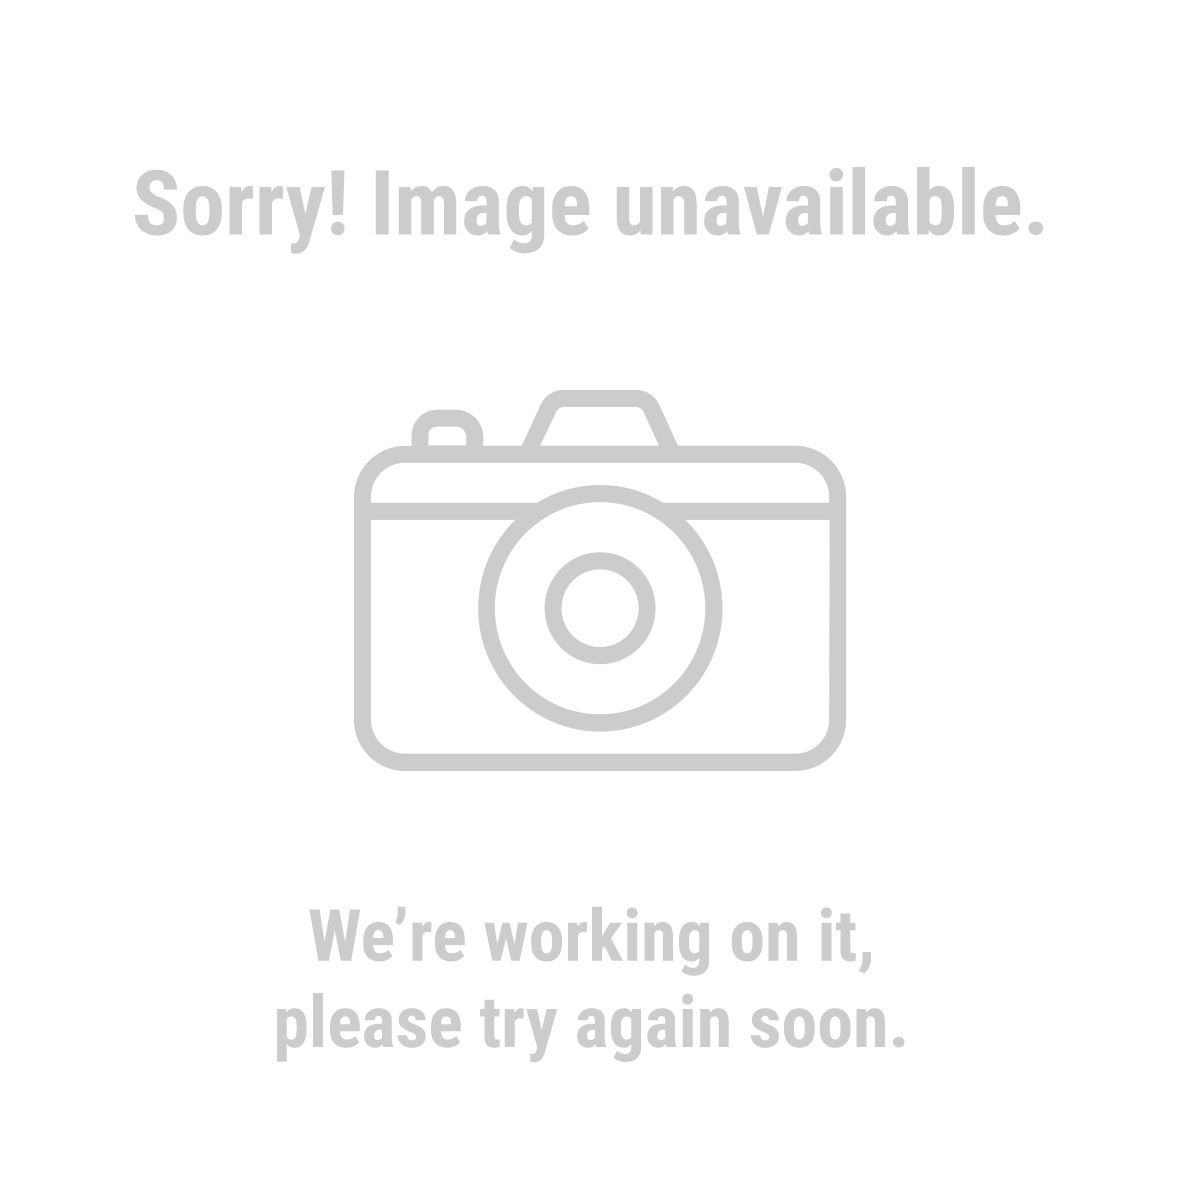 Chicago Electric Welding 68885 170 Amp MIG/Flux Wire Welder